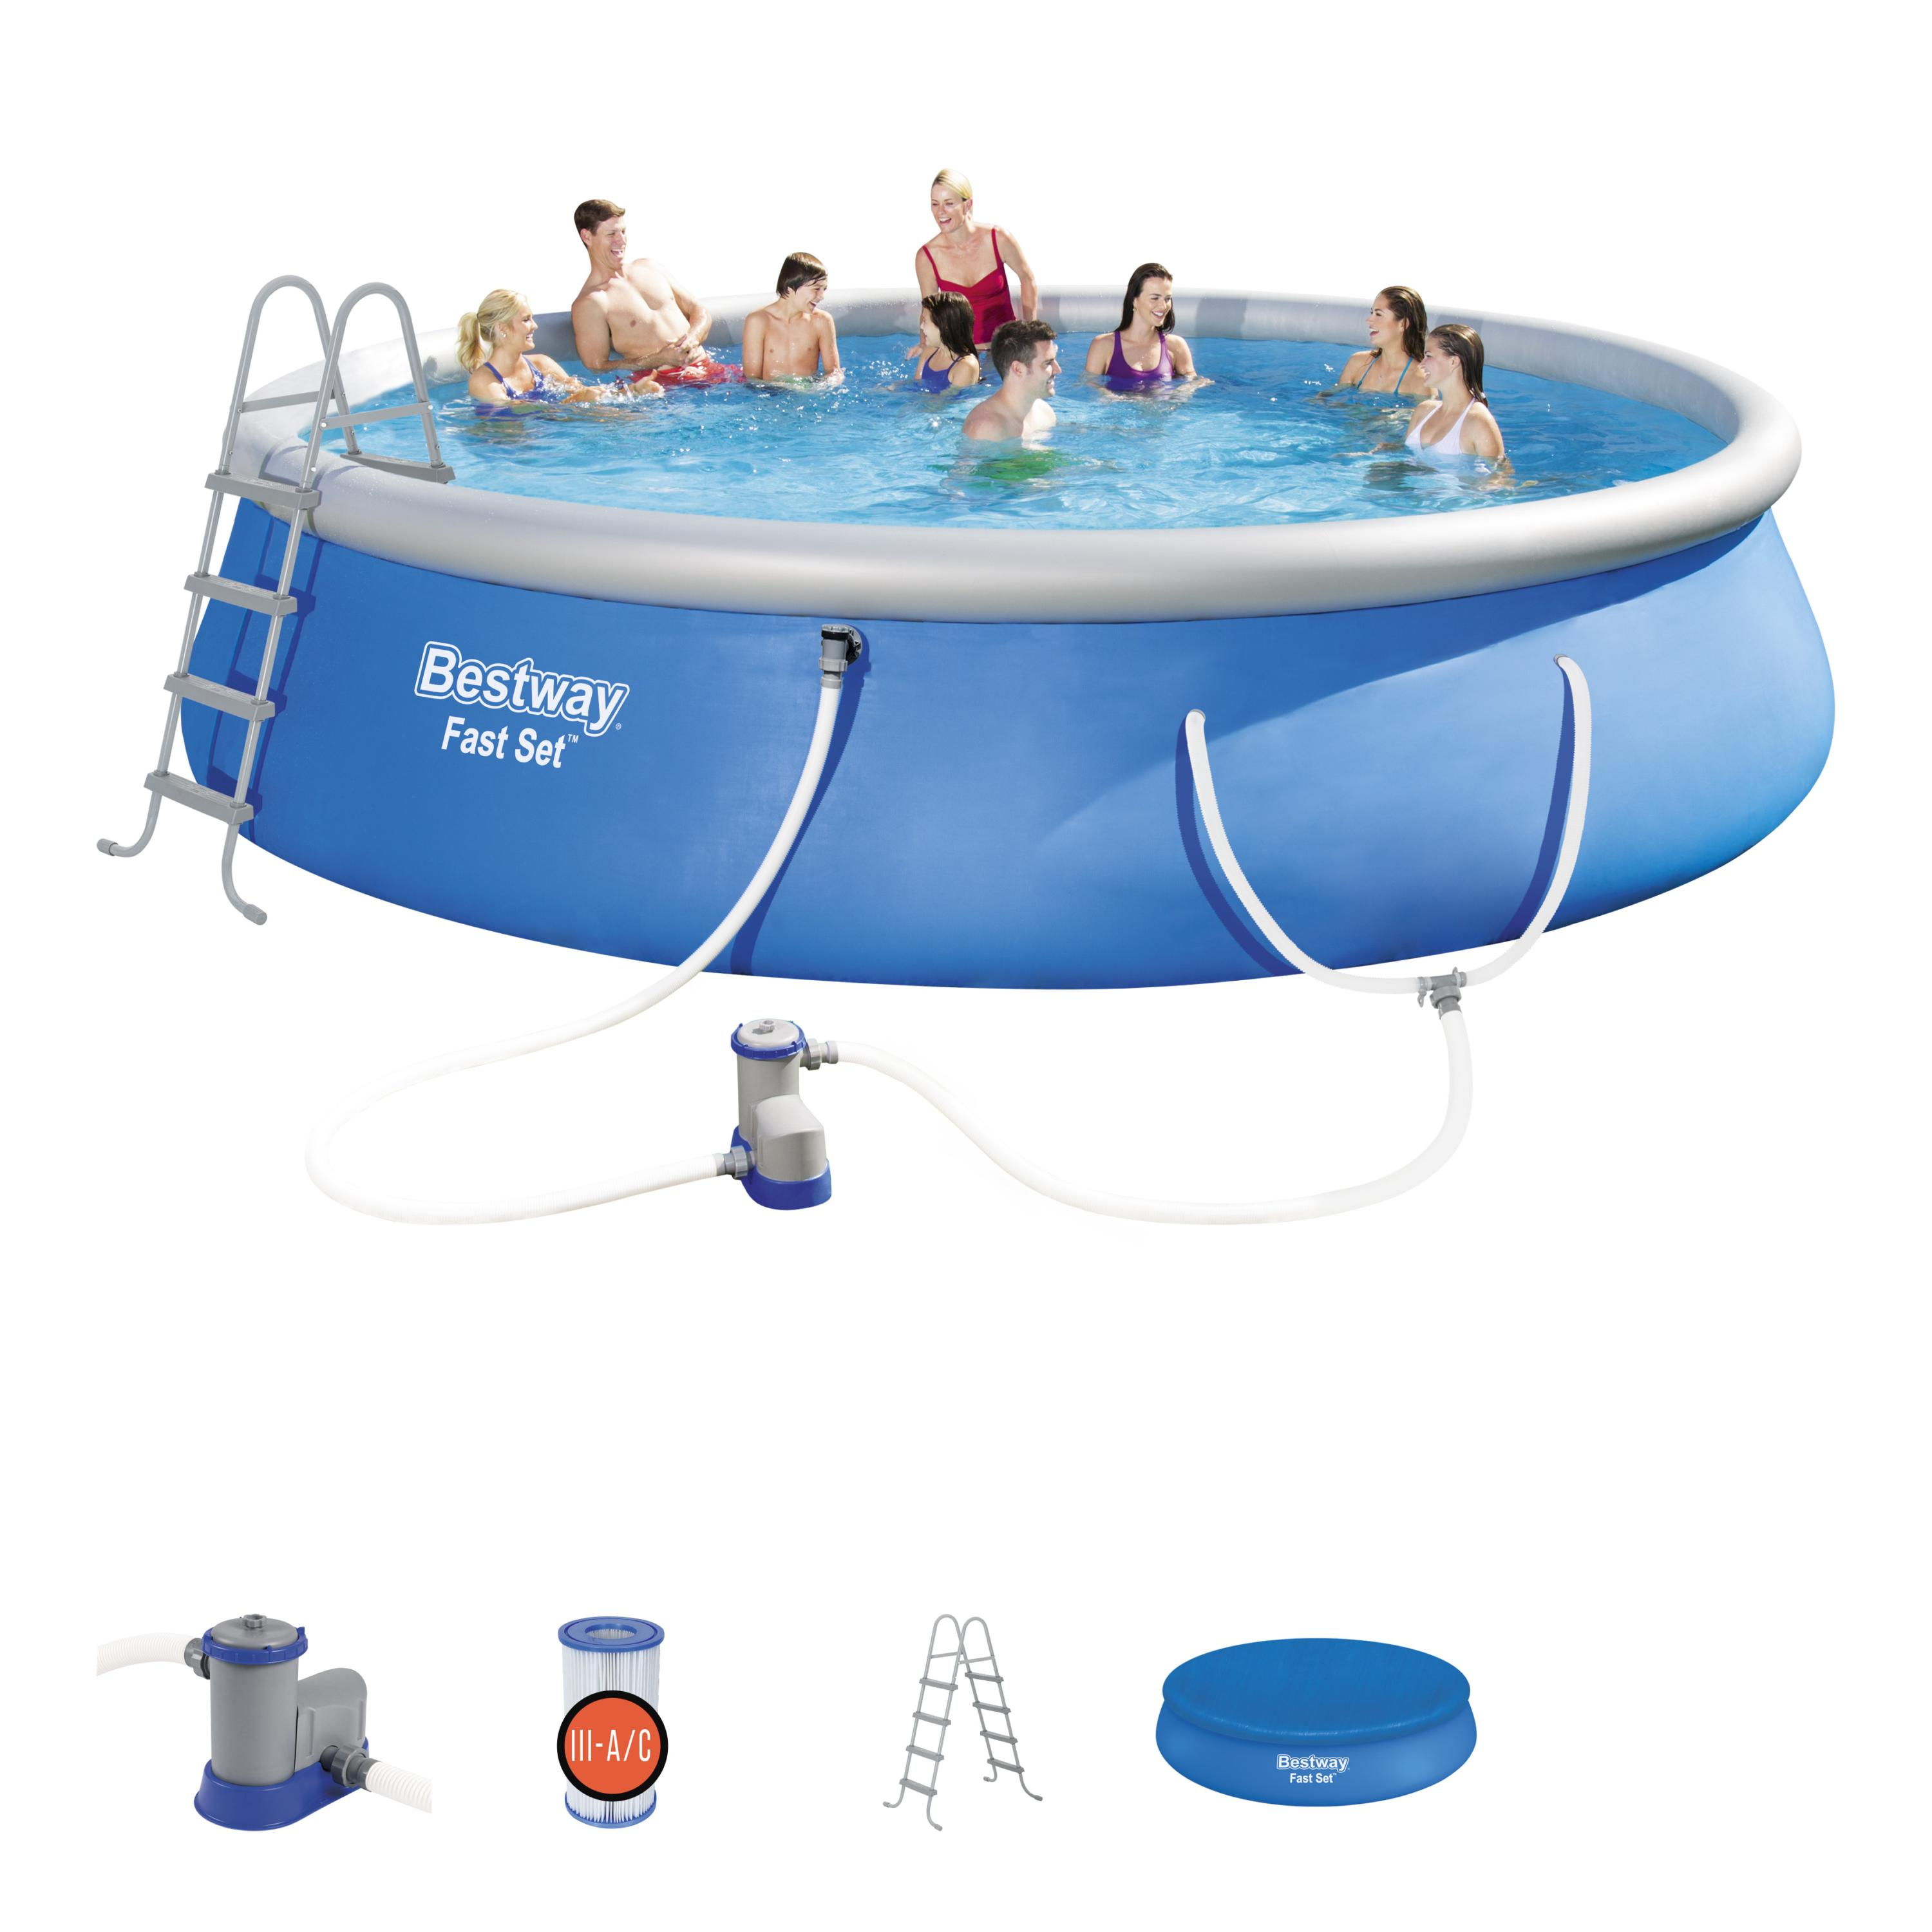 Bestway Fast Set 18 X 48 Round Swimming Pool Set With Pump Ladder And Cover Walmart Com Walmart Com